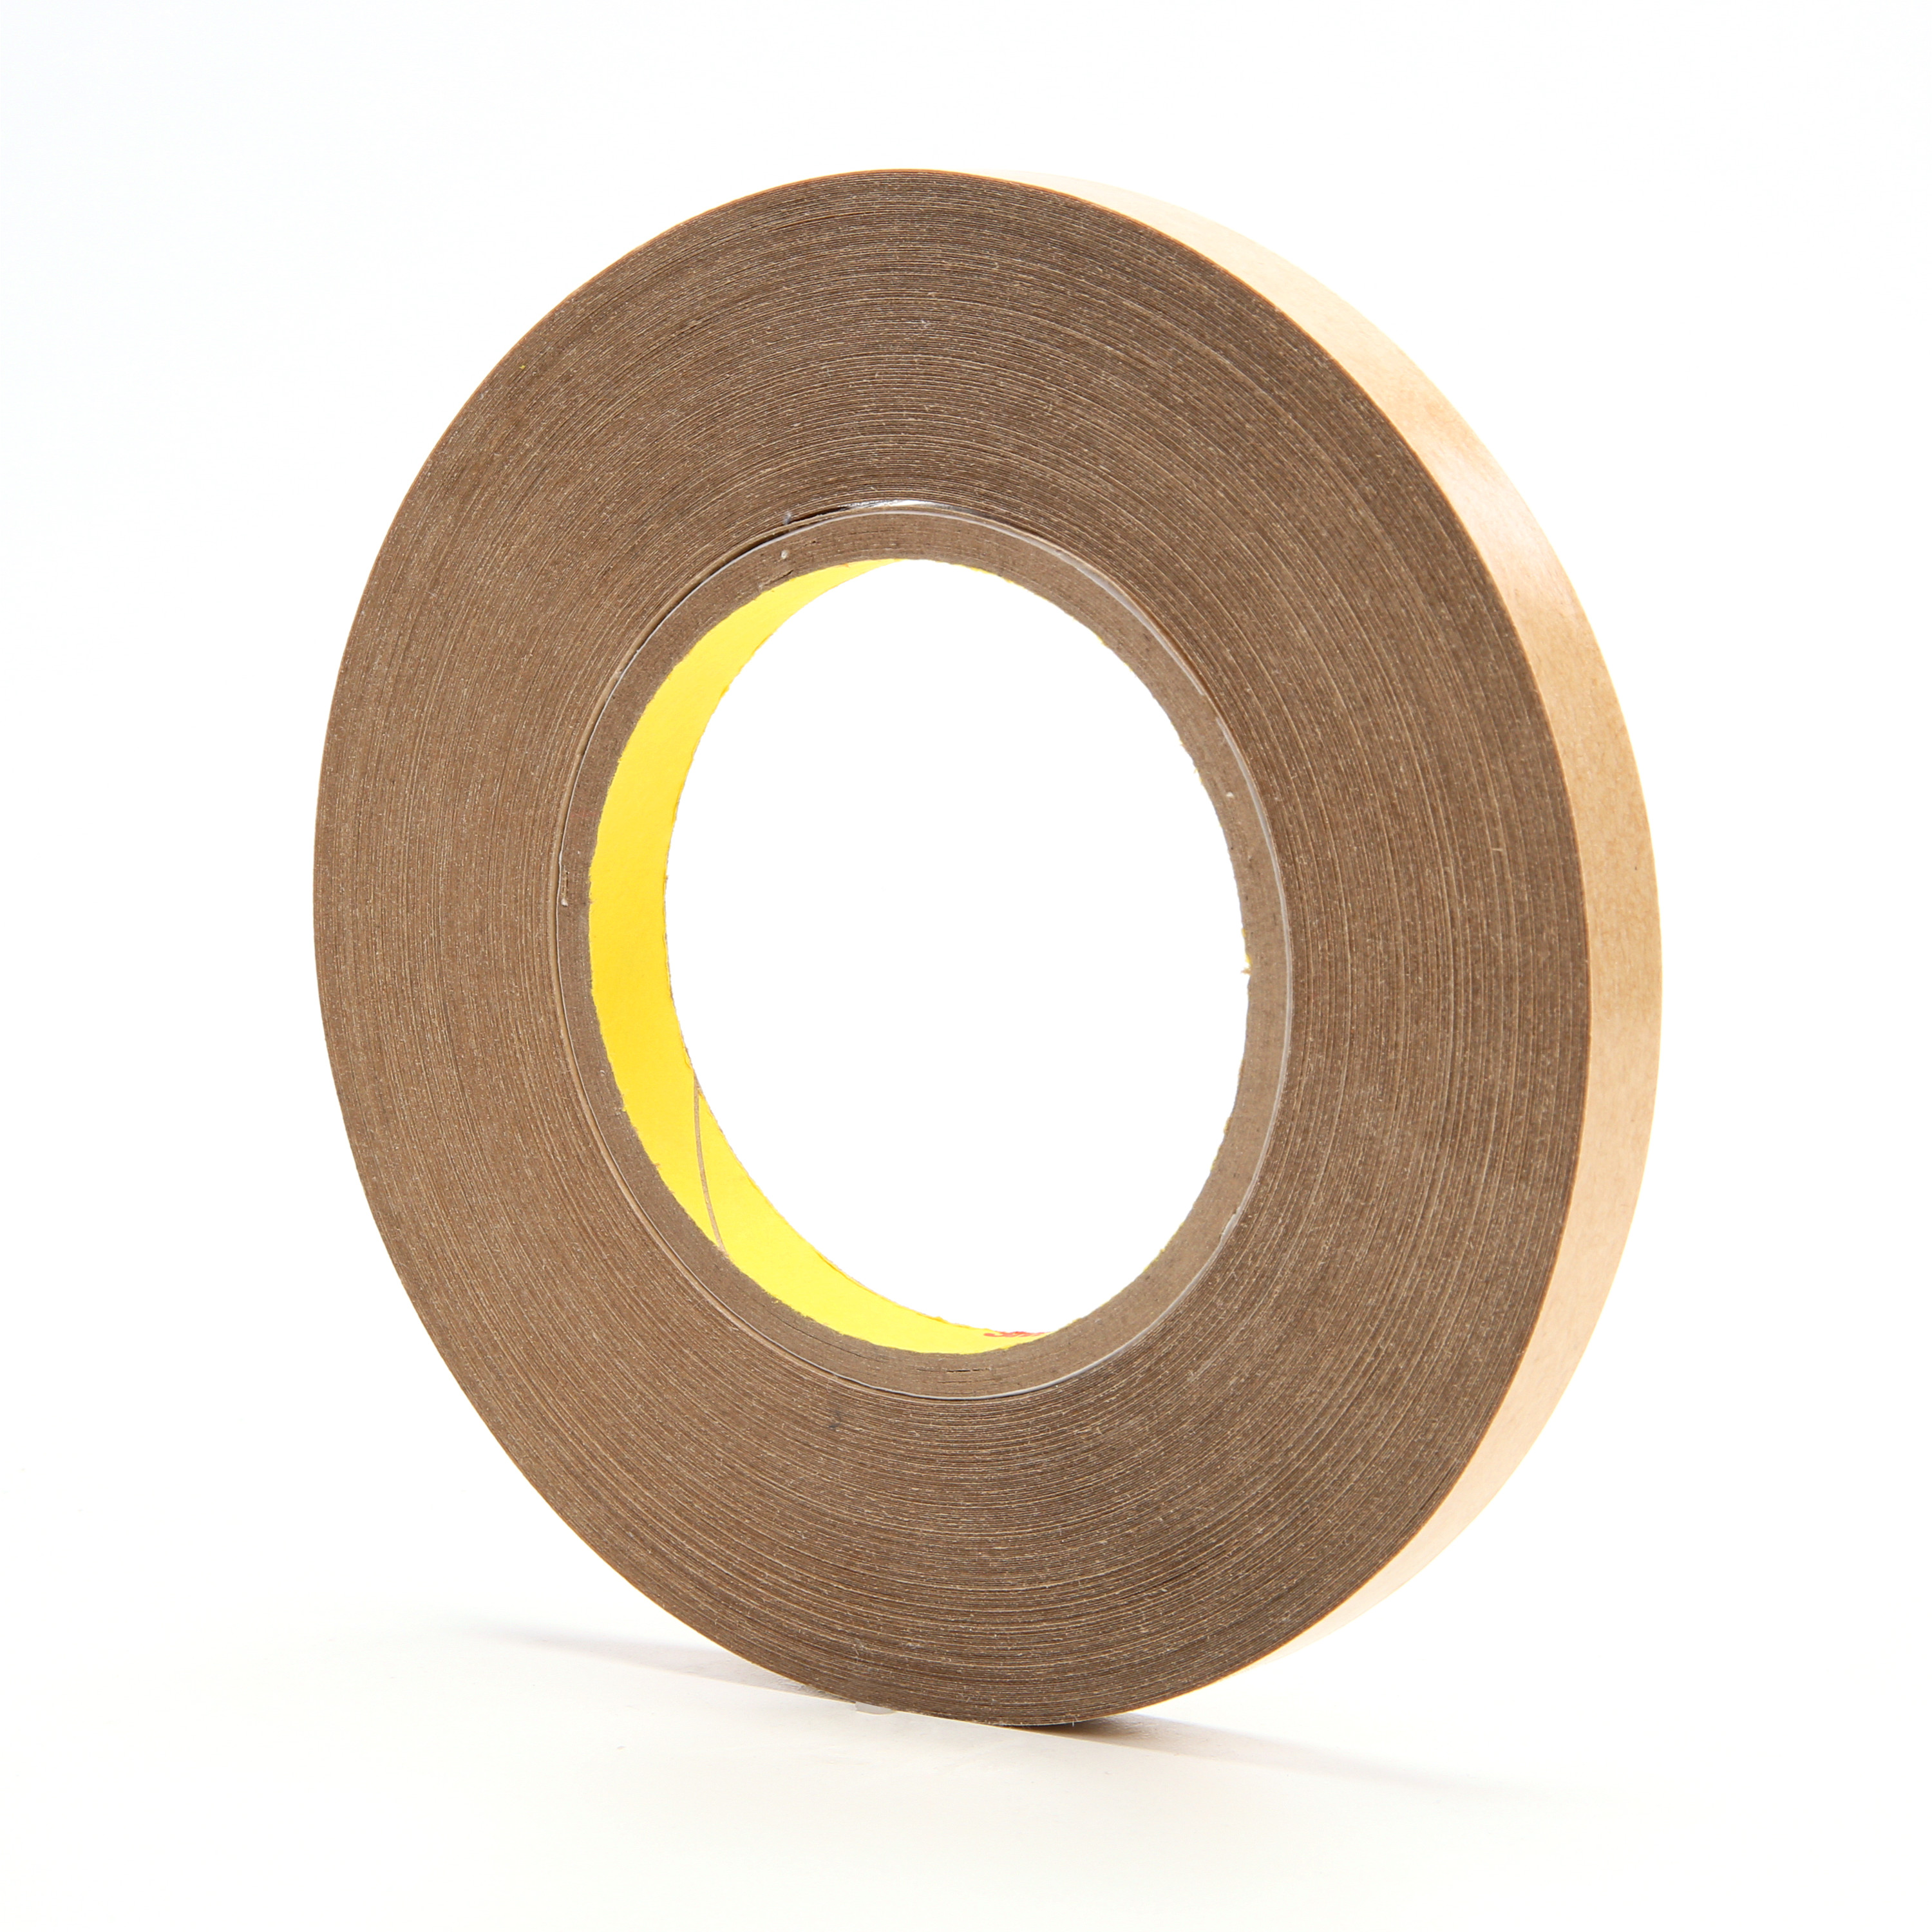 3M™ Adhesive Transfer Tape 950, Clear, 1/2 in x 60 yd, 5 mil, 72 rolls per case